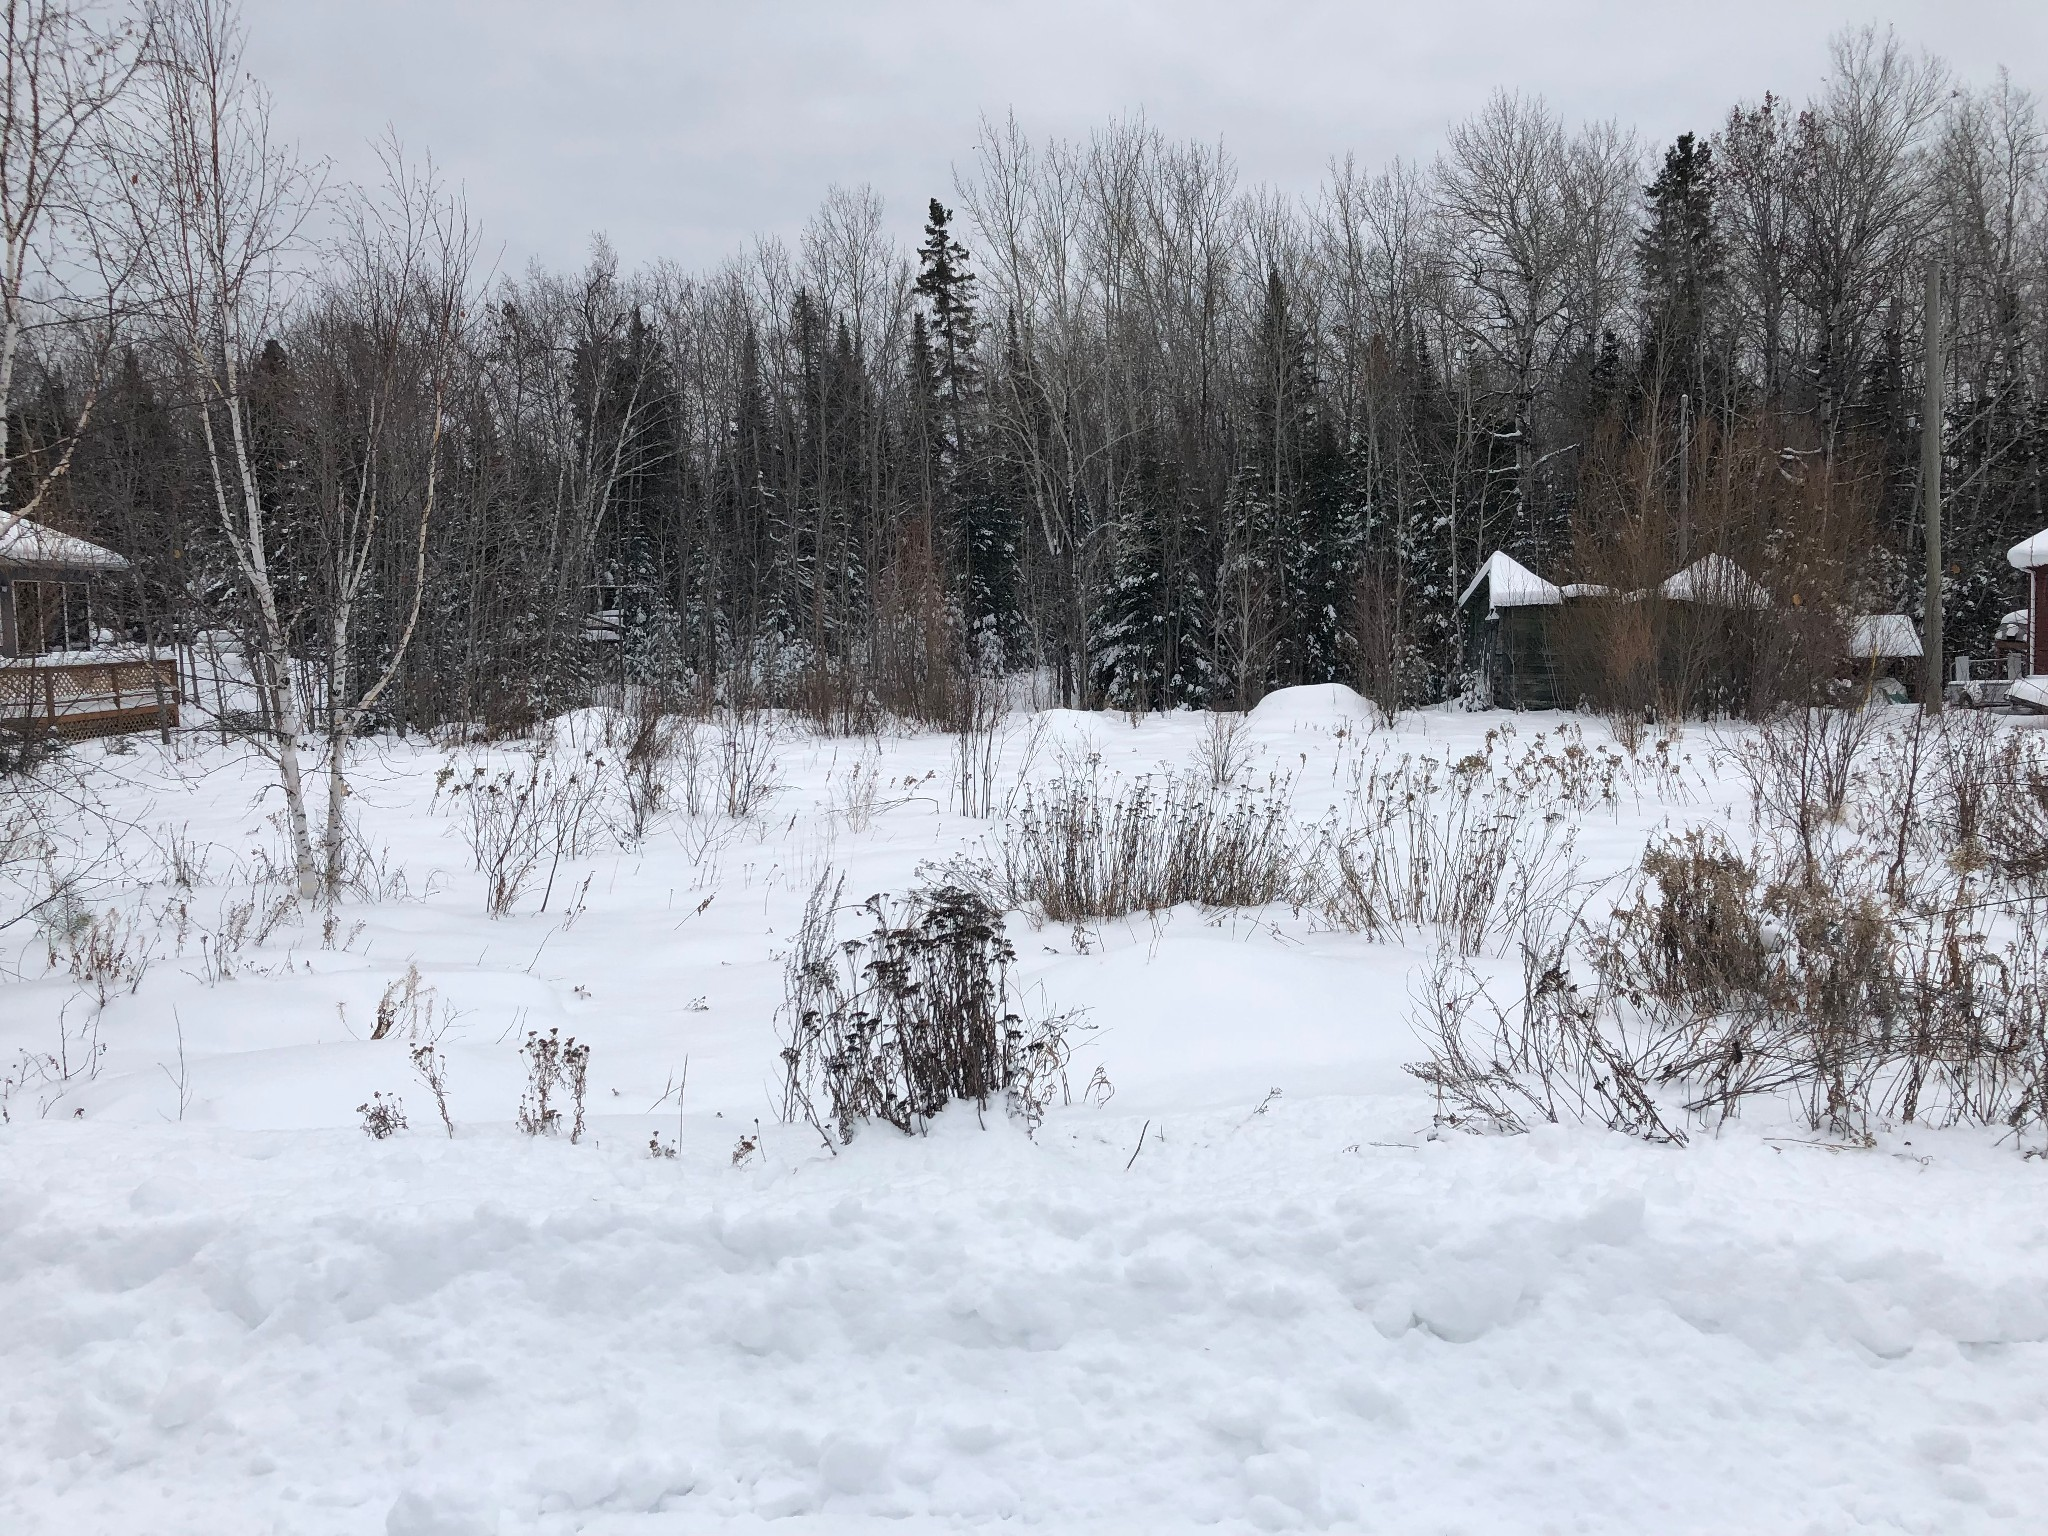 FEATURED LISTING: BLOCK 5 LOT 3 GOLDEN ACRES DOROTHY LAKE WHITESHELL PROVINCIAL PARK